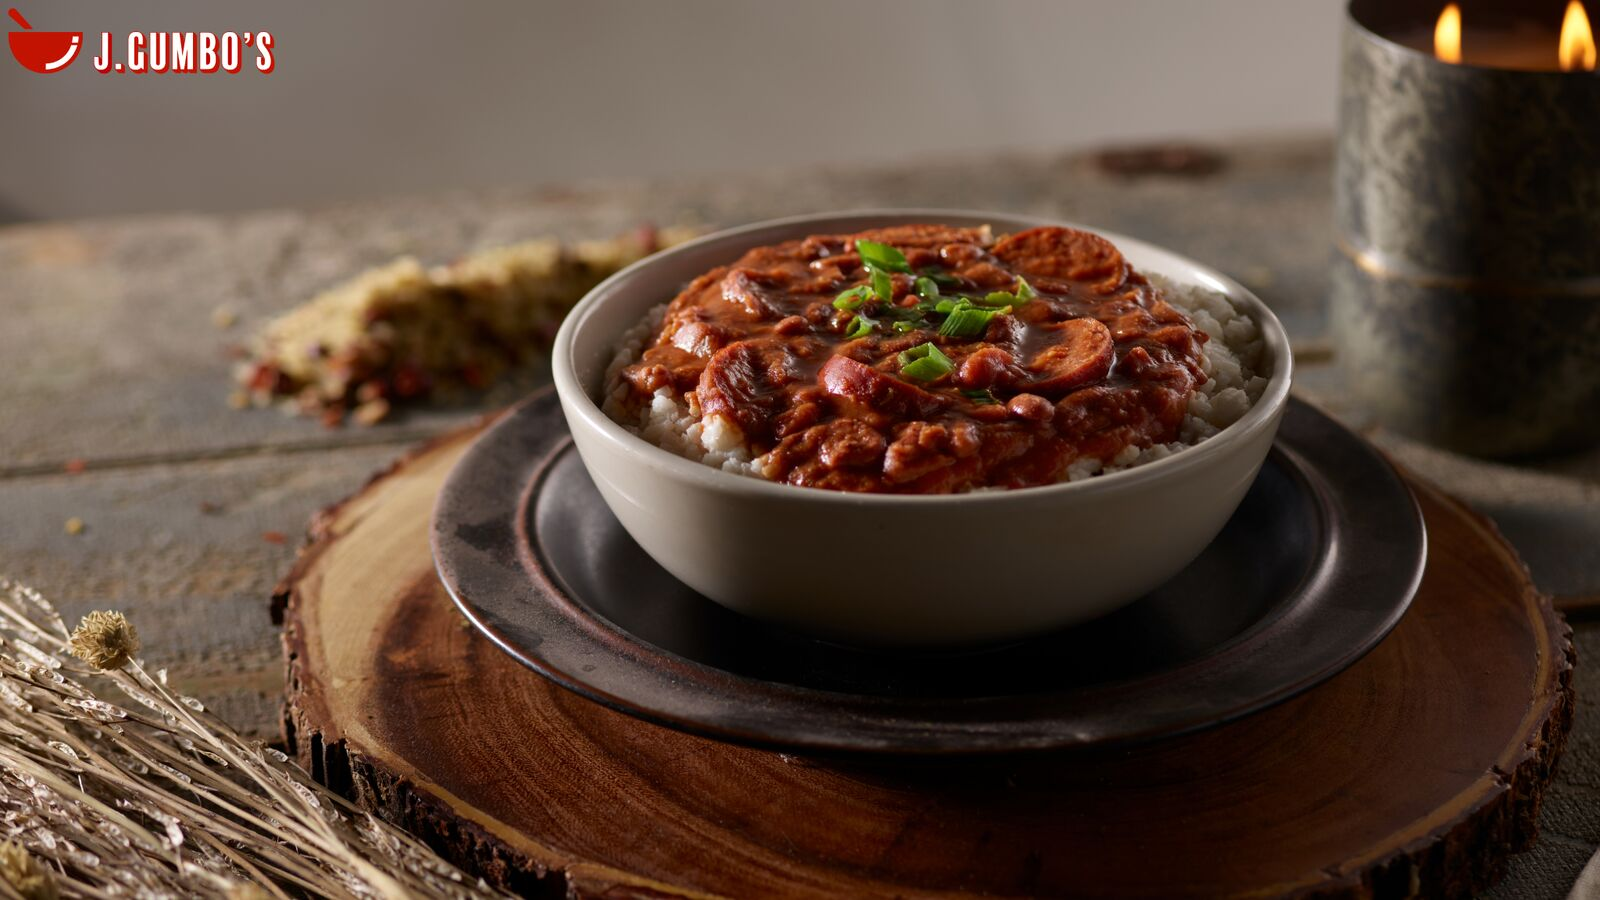 Red Beans & Rice: Creamy, Slow-Cooked Camellia Beans With Yellow Onion, Smoked Sausage And Cajun Seasonings